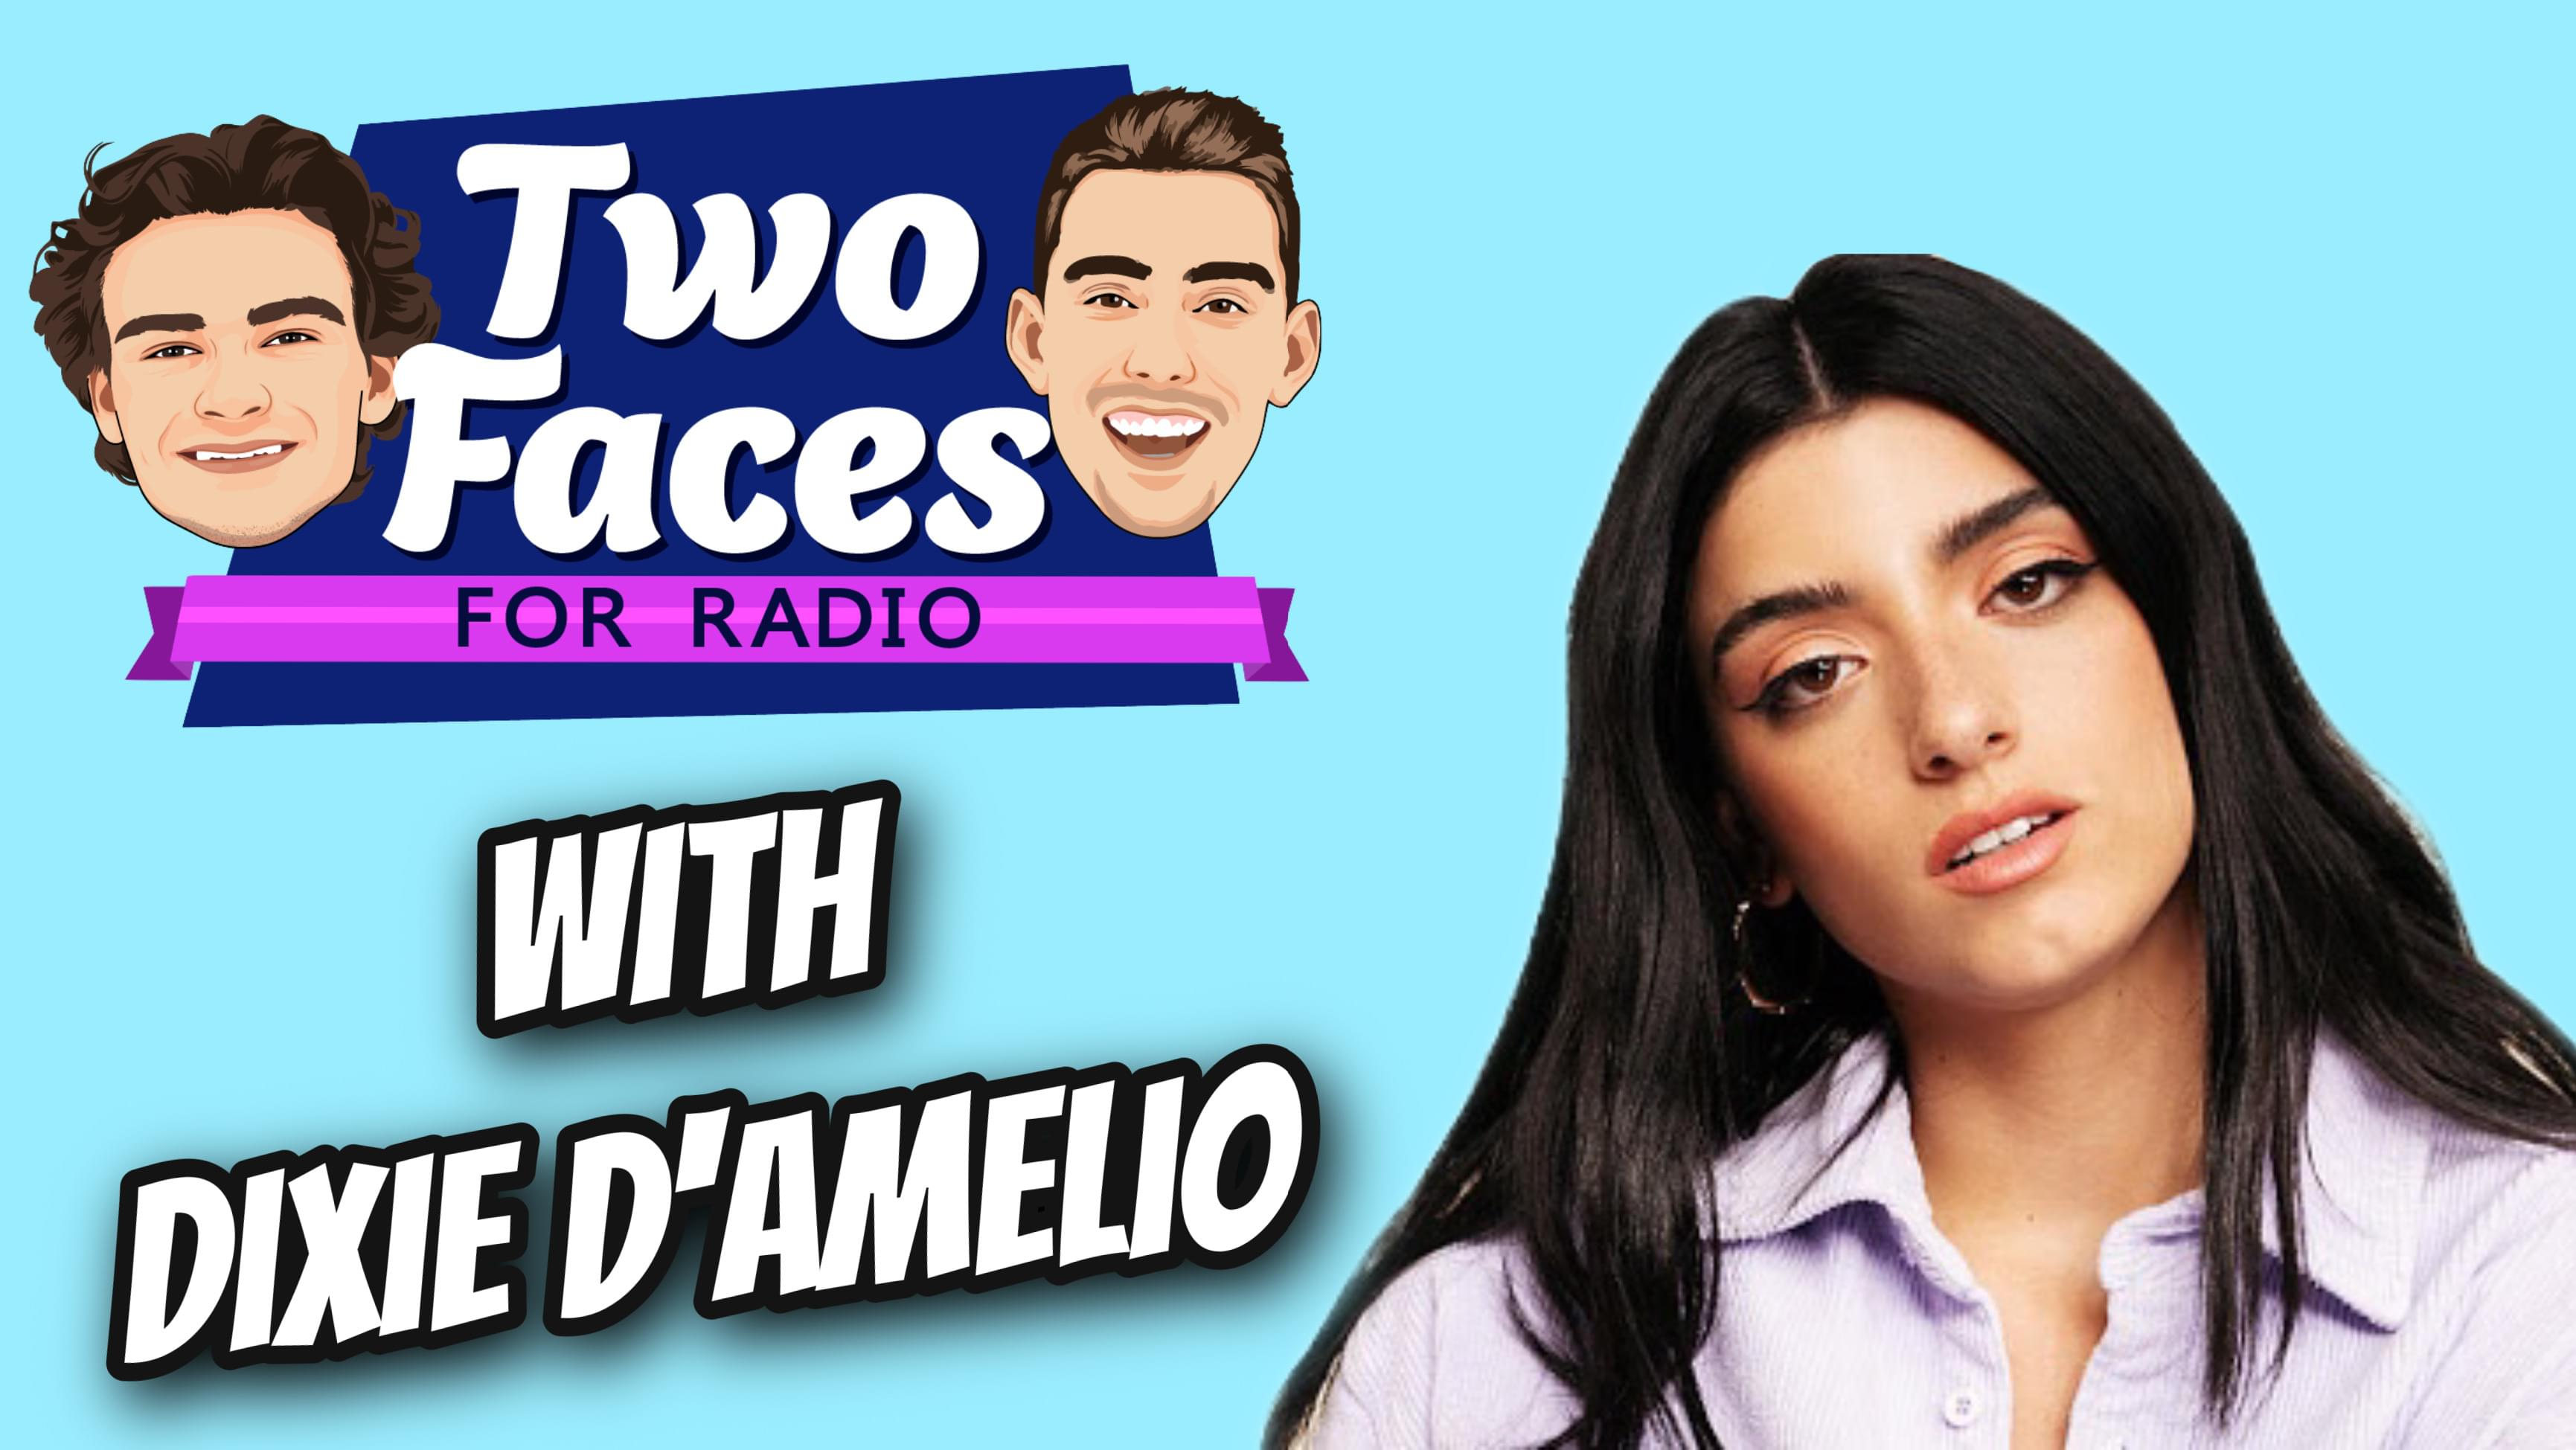 Dixie D'Amelio Joins The 'Two Faces For Radio' Podcast [WATCH]